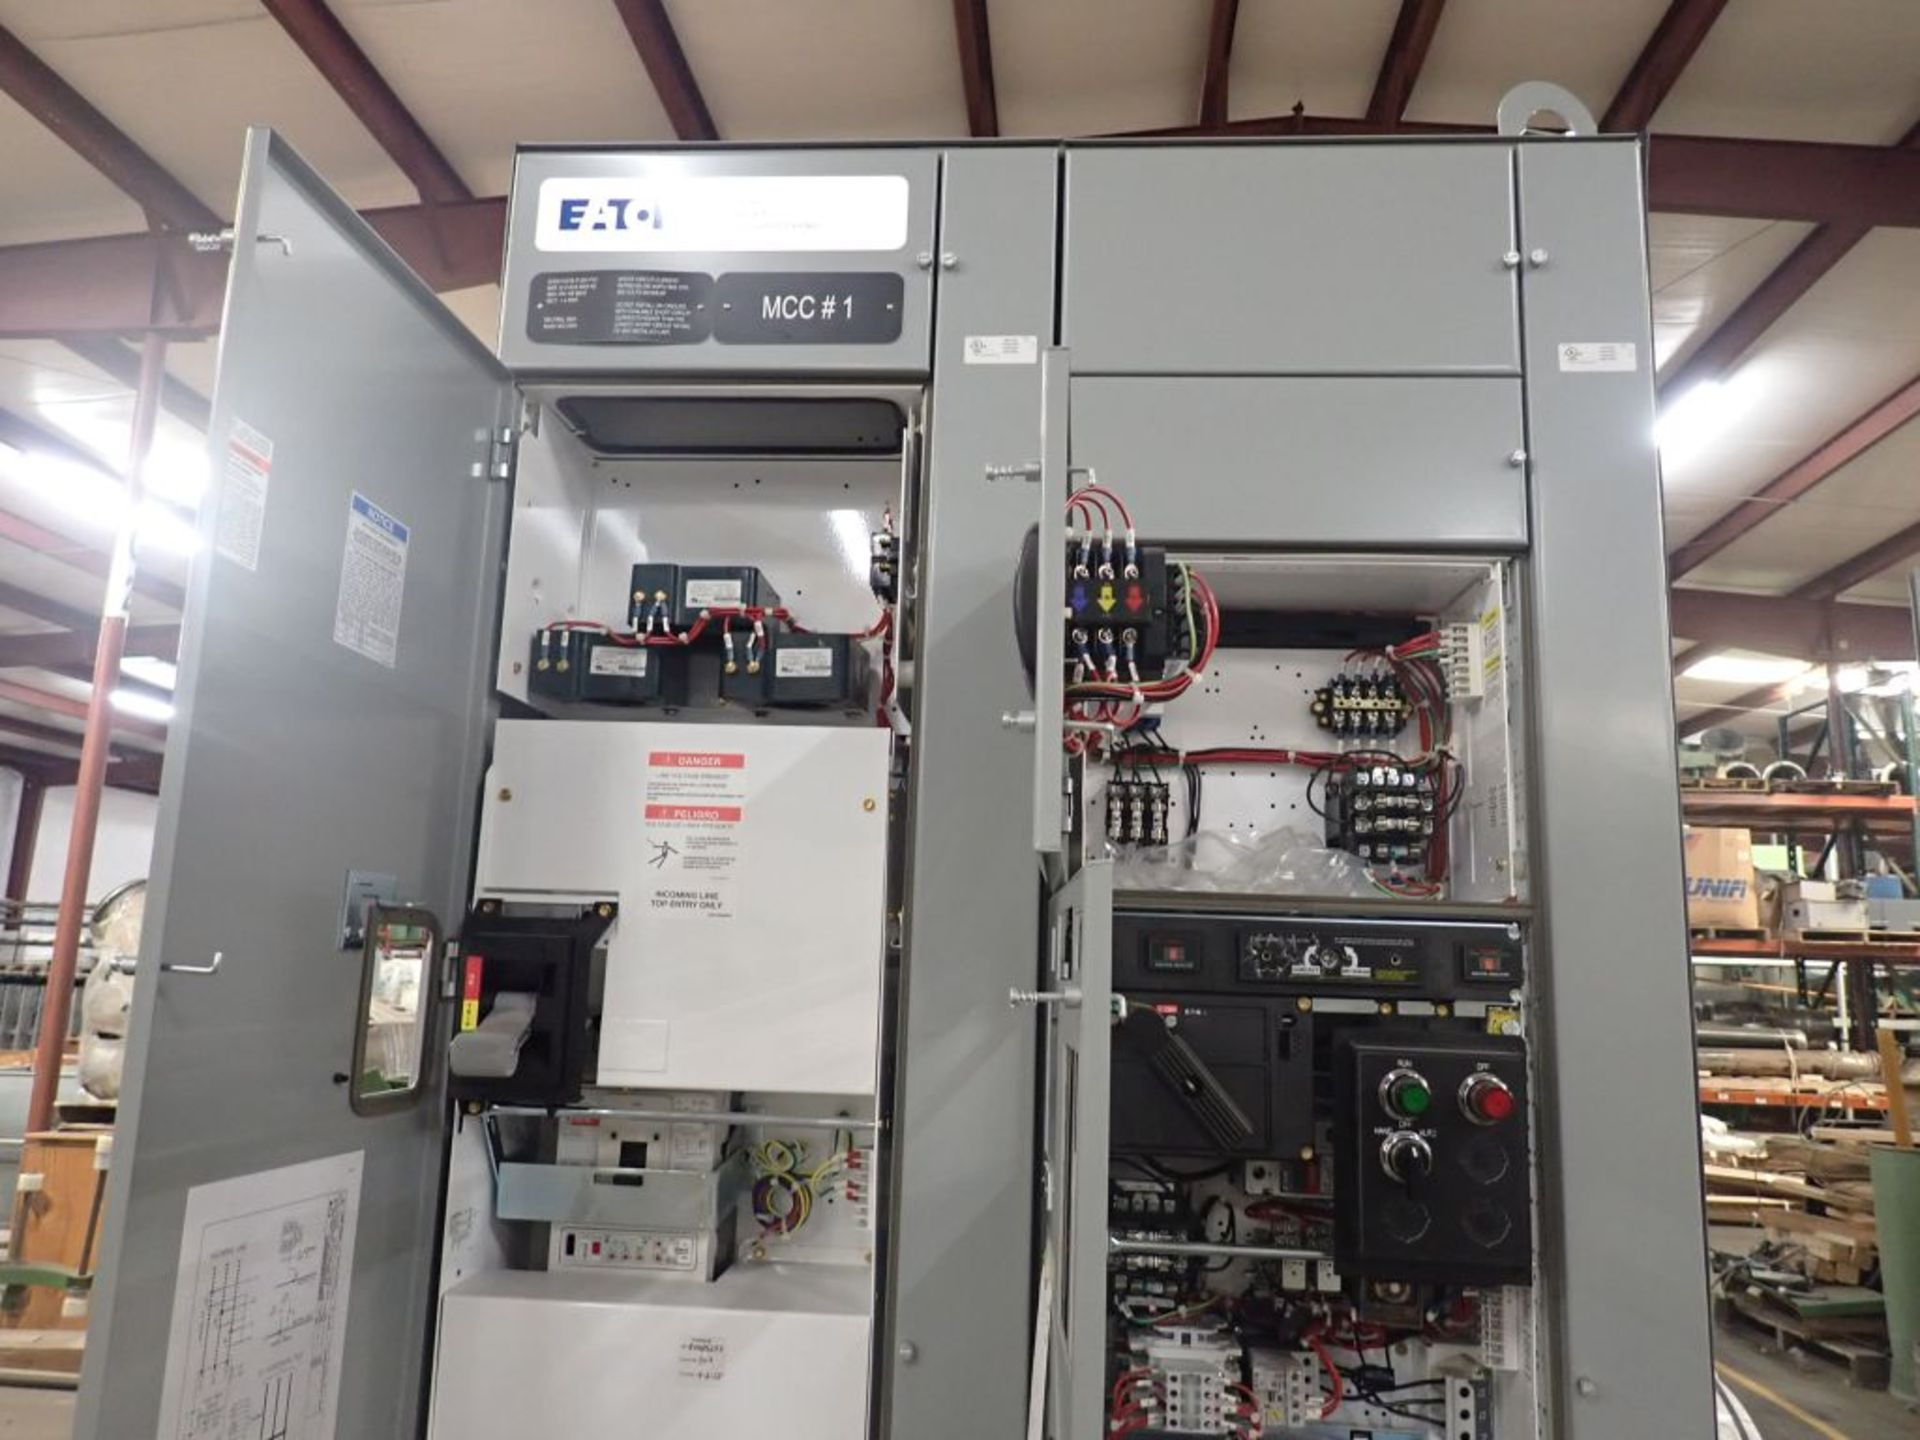 Eaton Freedom Flashgard Motor Control Center | SCR0753278, 480V; (1) INCB-250A, with 400A - Image 18 of 69